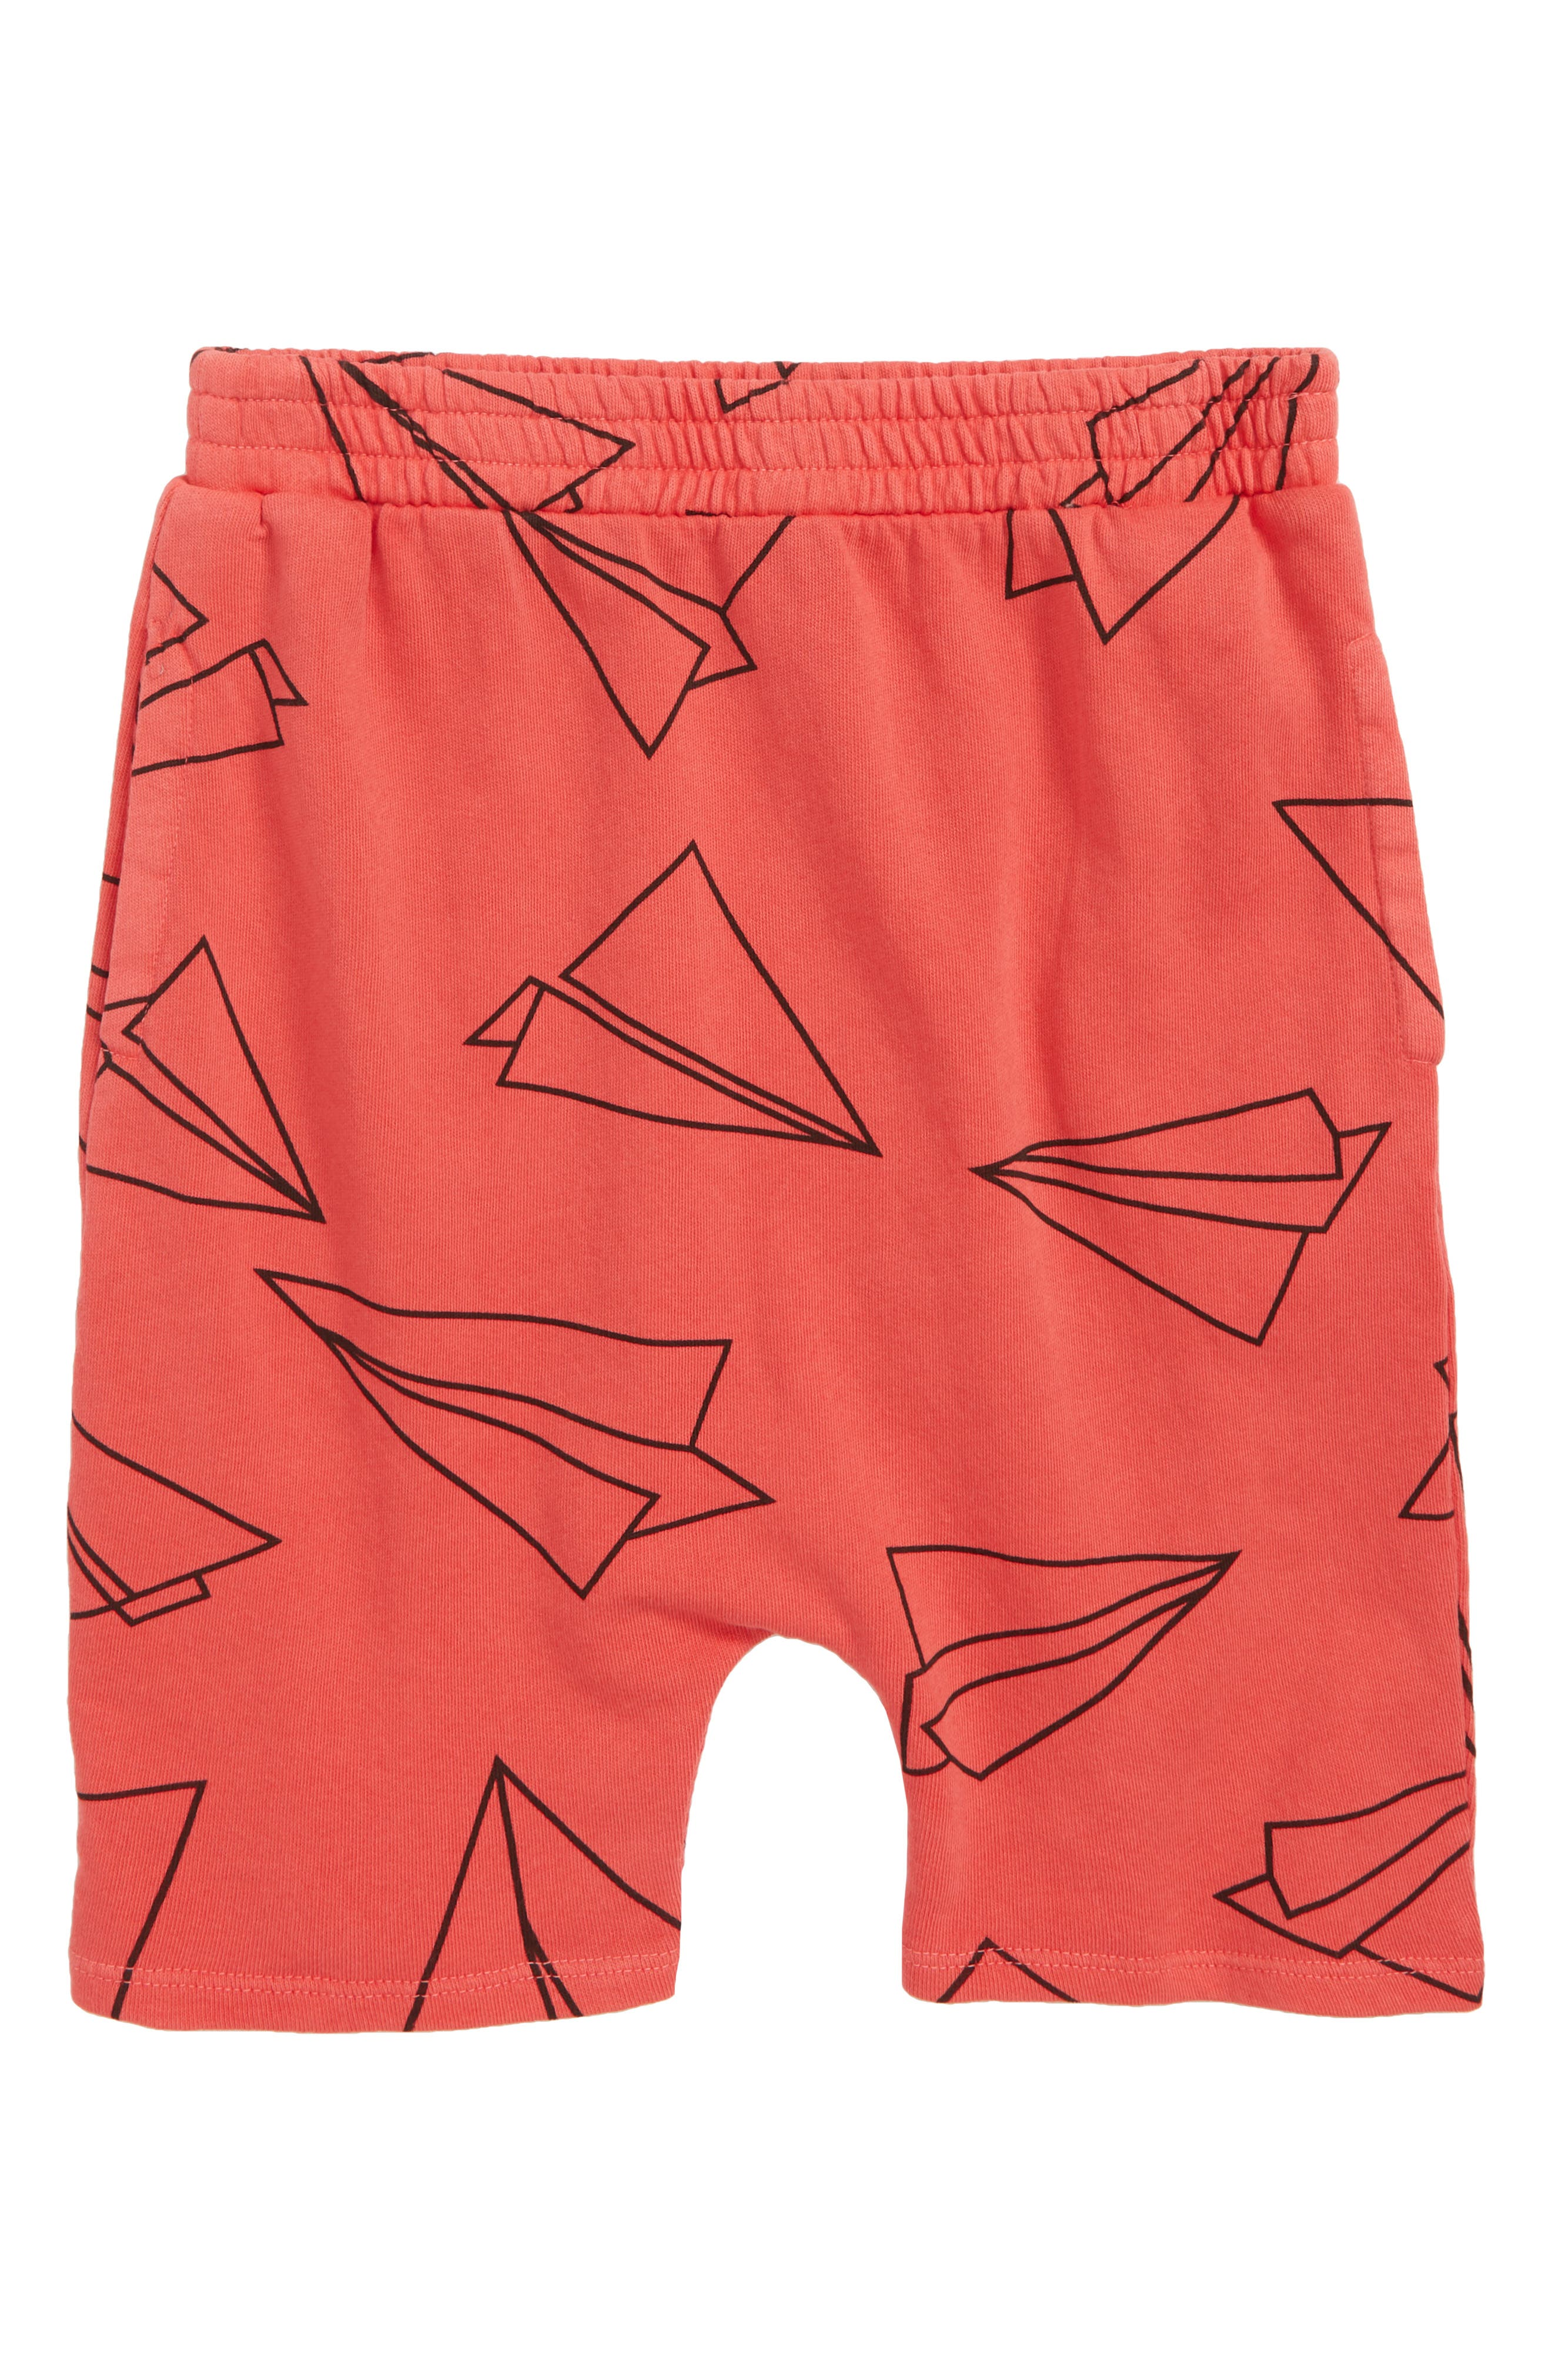 Print Shorts,                         Main,                         color, Red Hibiscus Airplanes